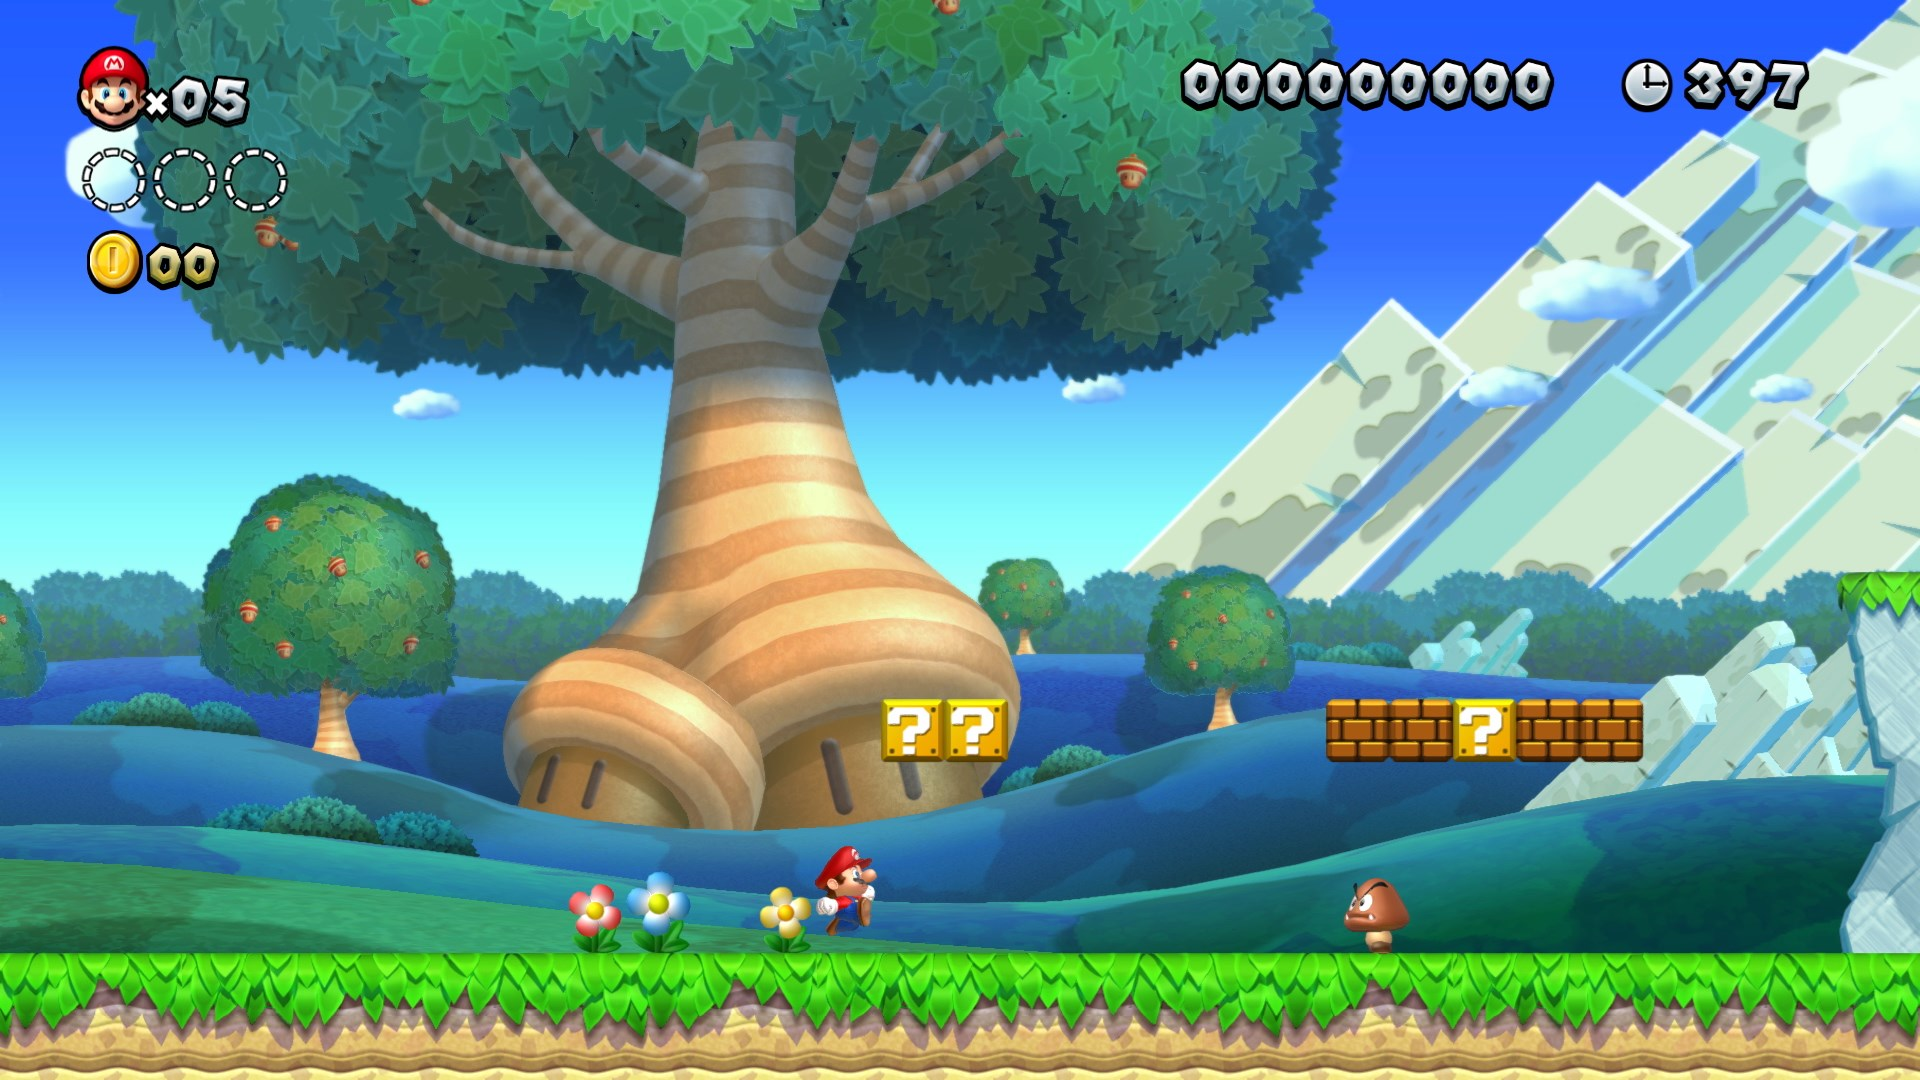 New Super Mario Bros. U Deluxe review -- still searching for an identity